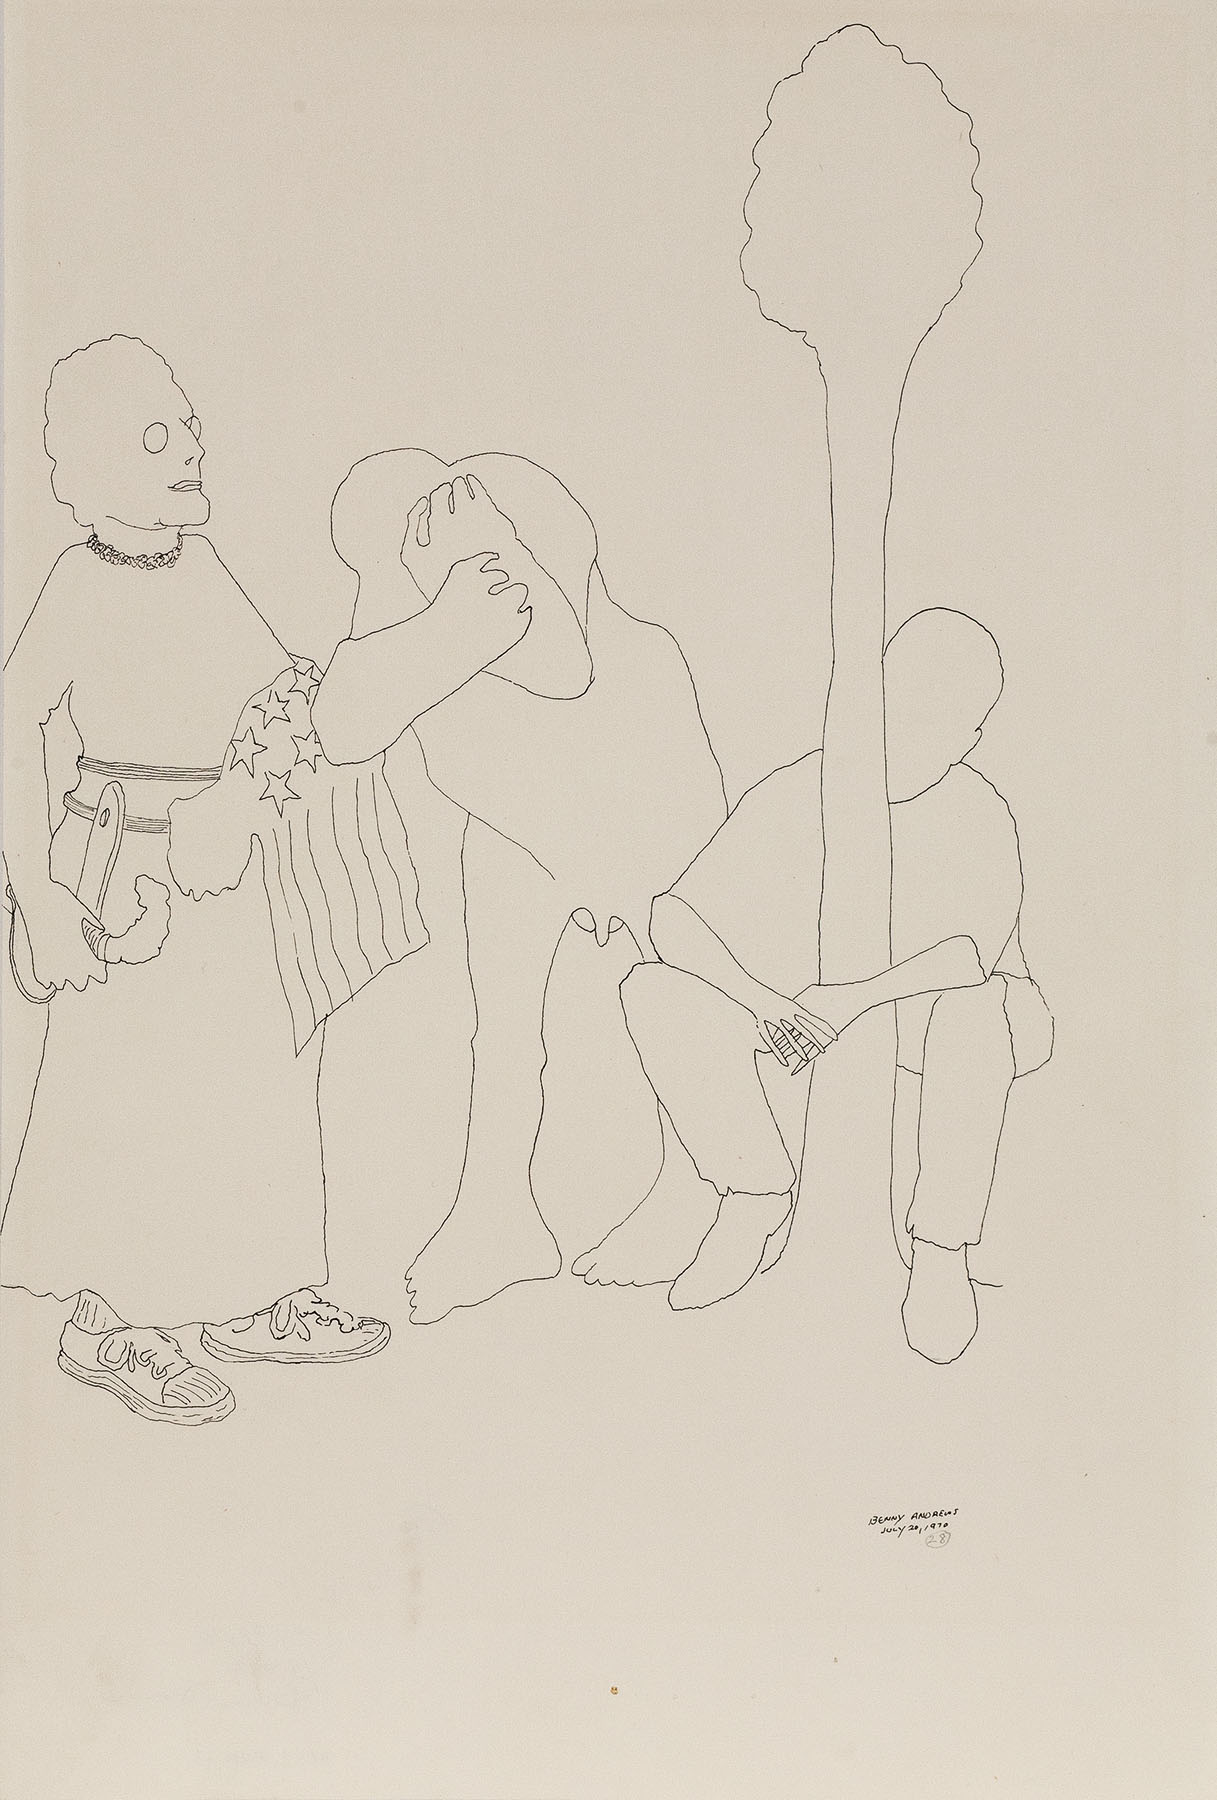 """Trio (Study for Symbols), 1970 pen and ink on paper 18 x 12.25"""""""